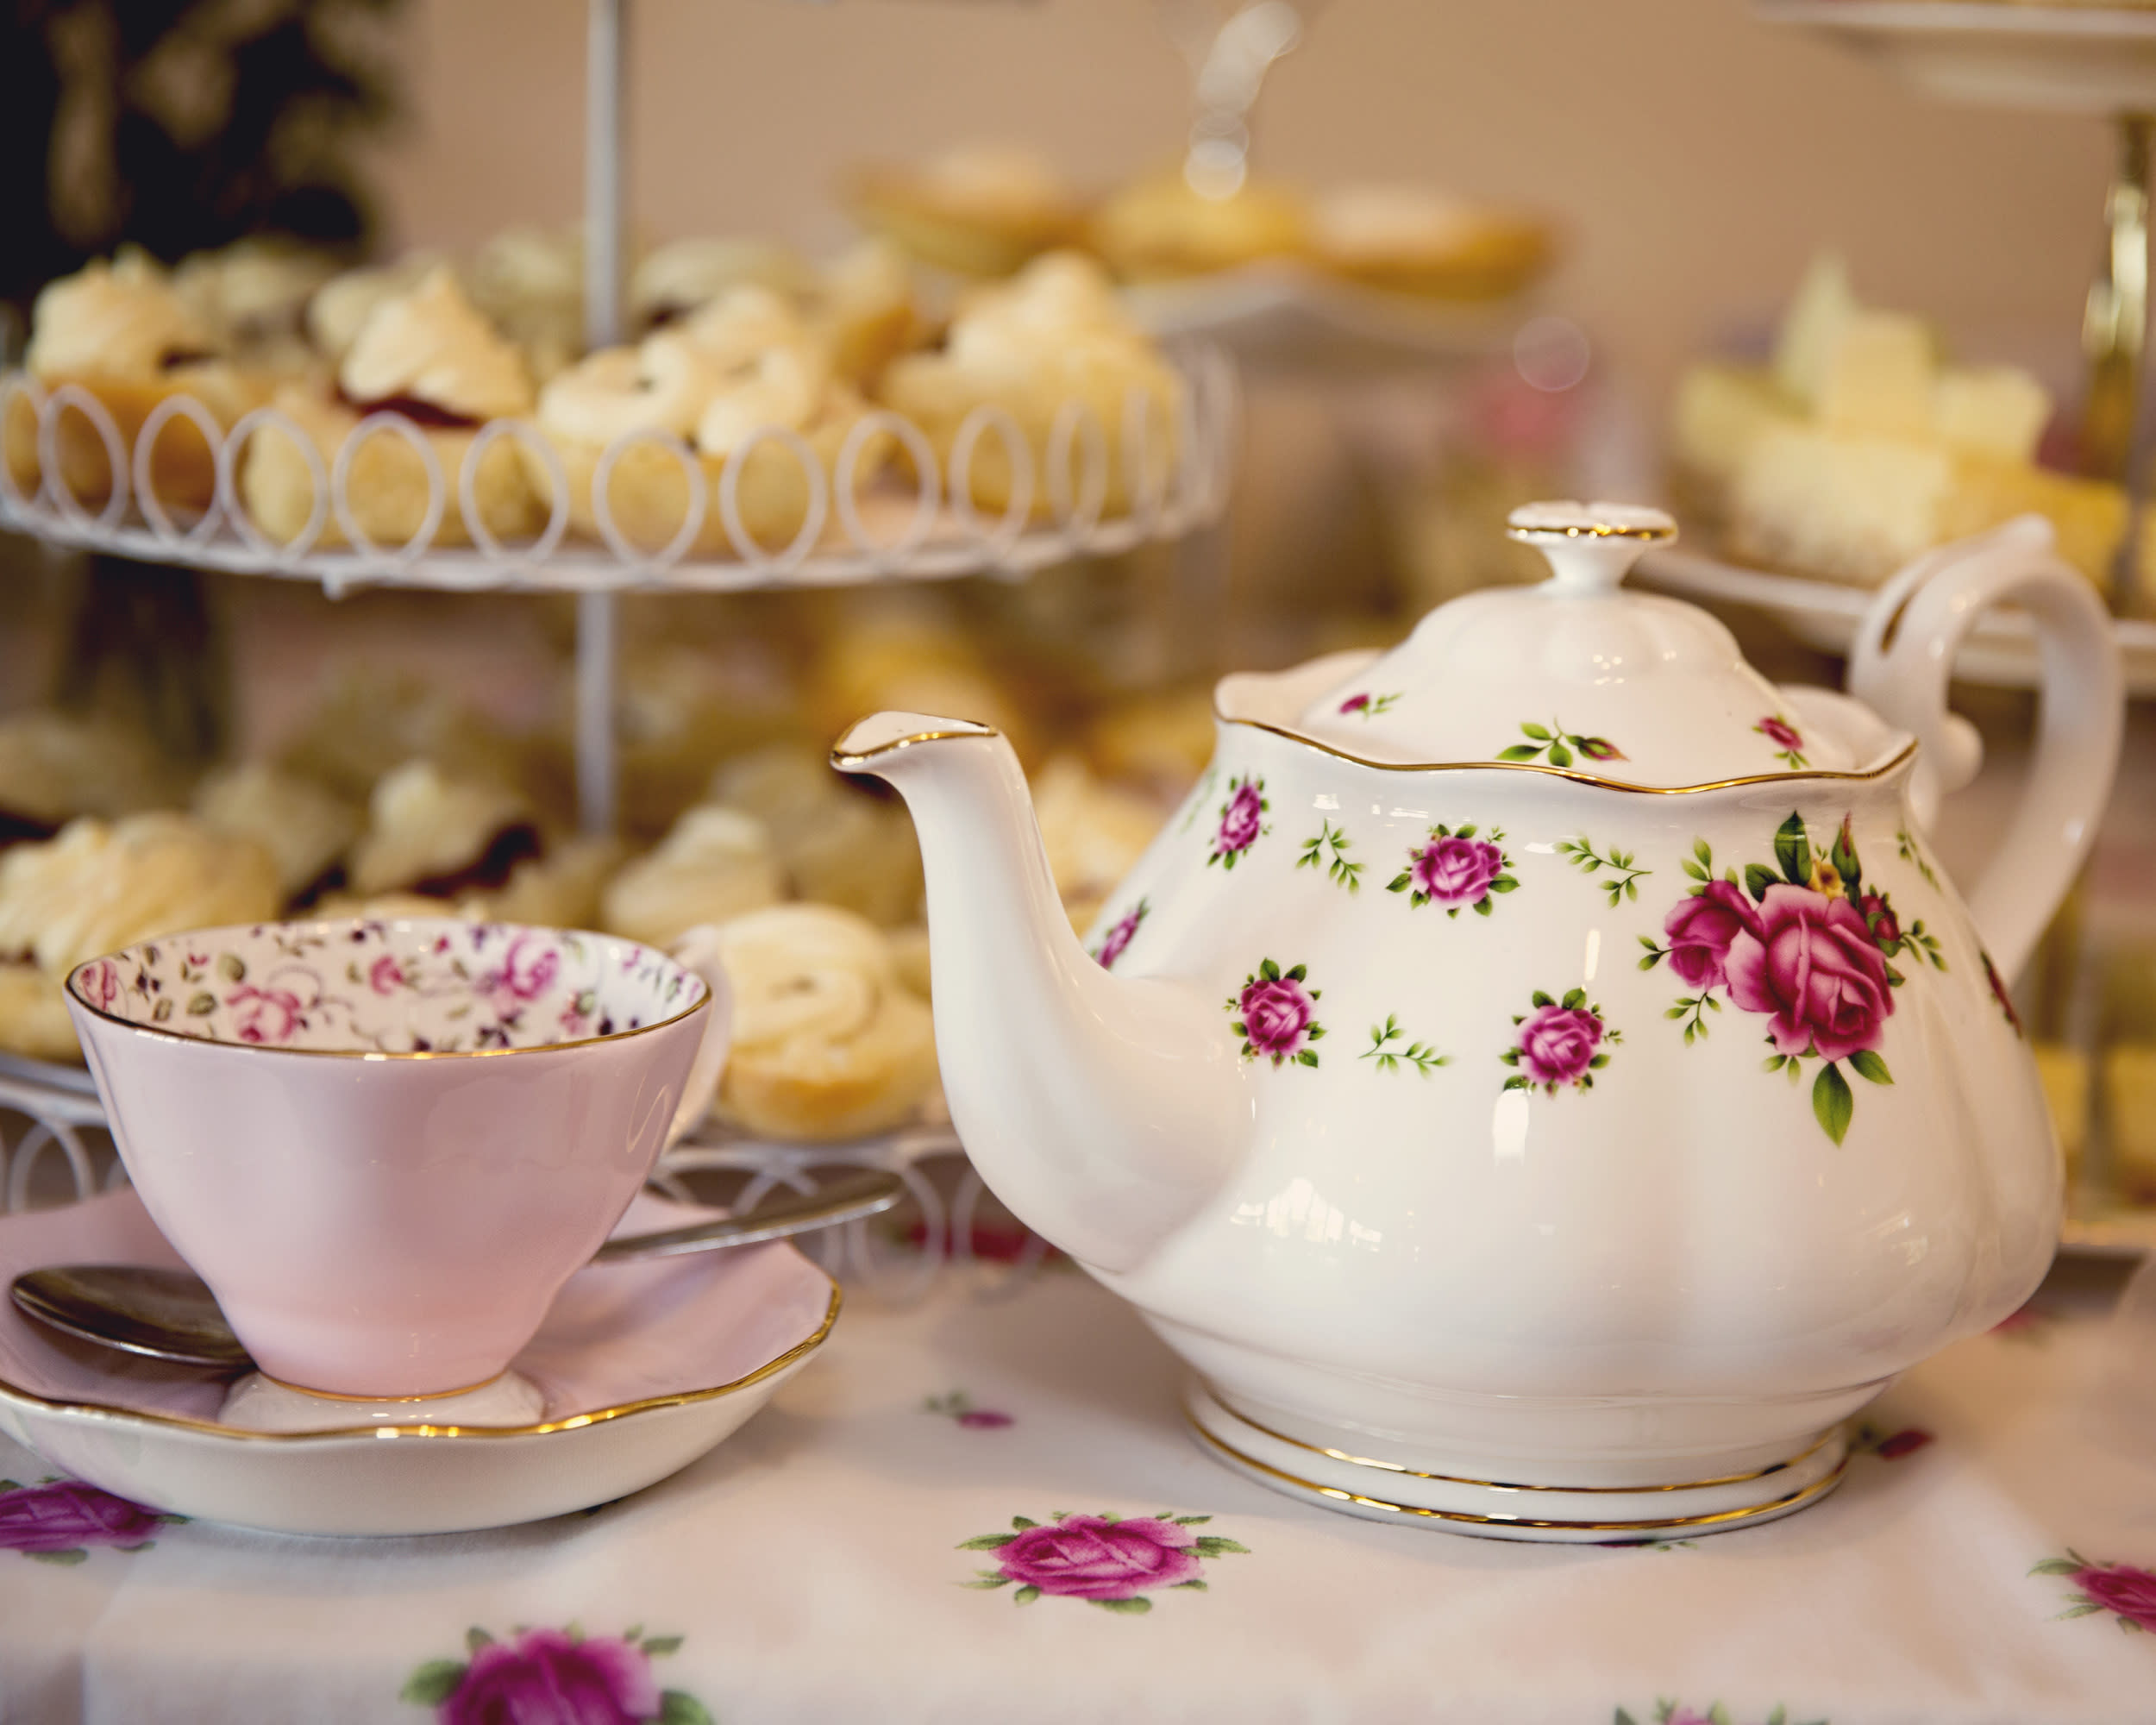 Teapot, cup and saucer and food for a high tea or morning or afternoon tea - elegant